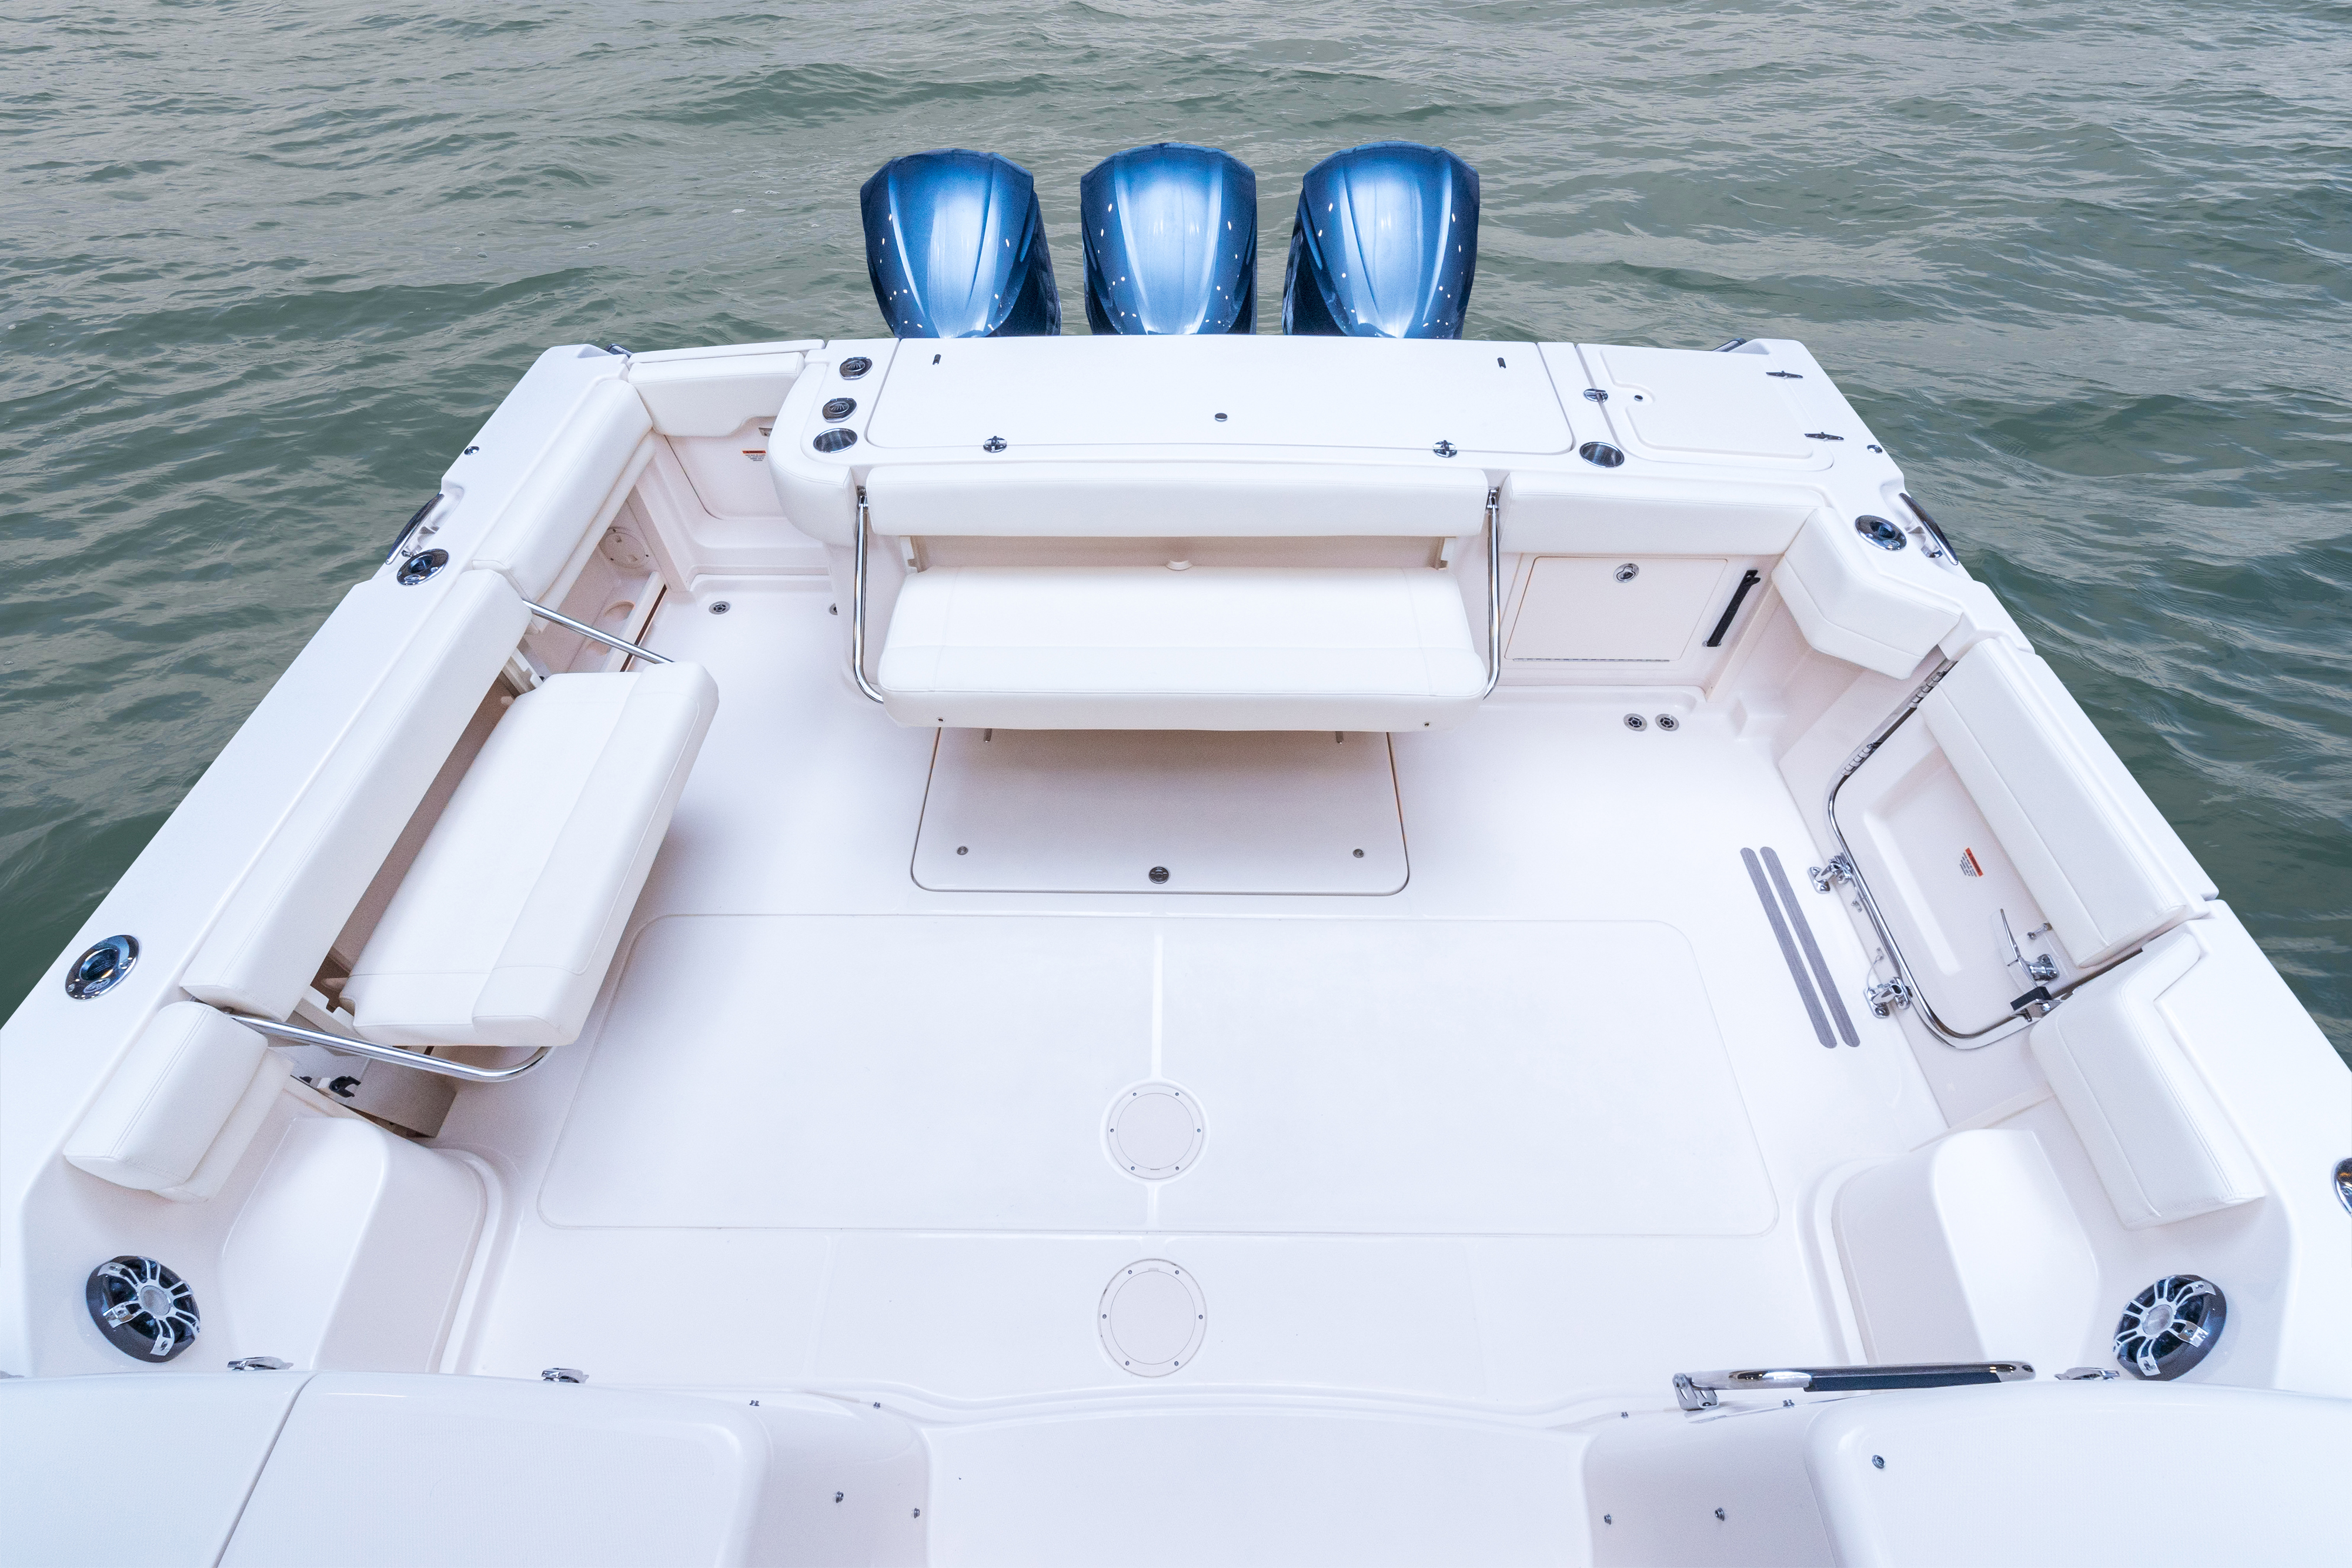 Grady-White Express 370, 37-foot express cabin boat with companion bench seat